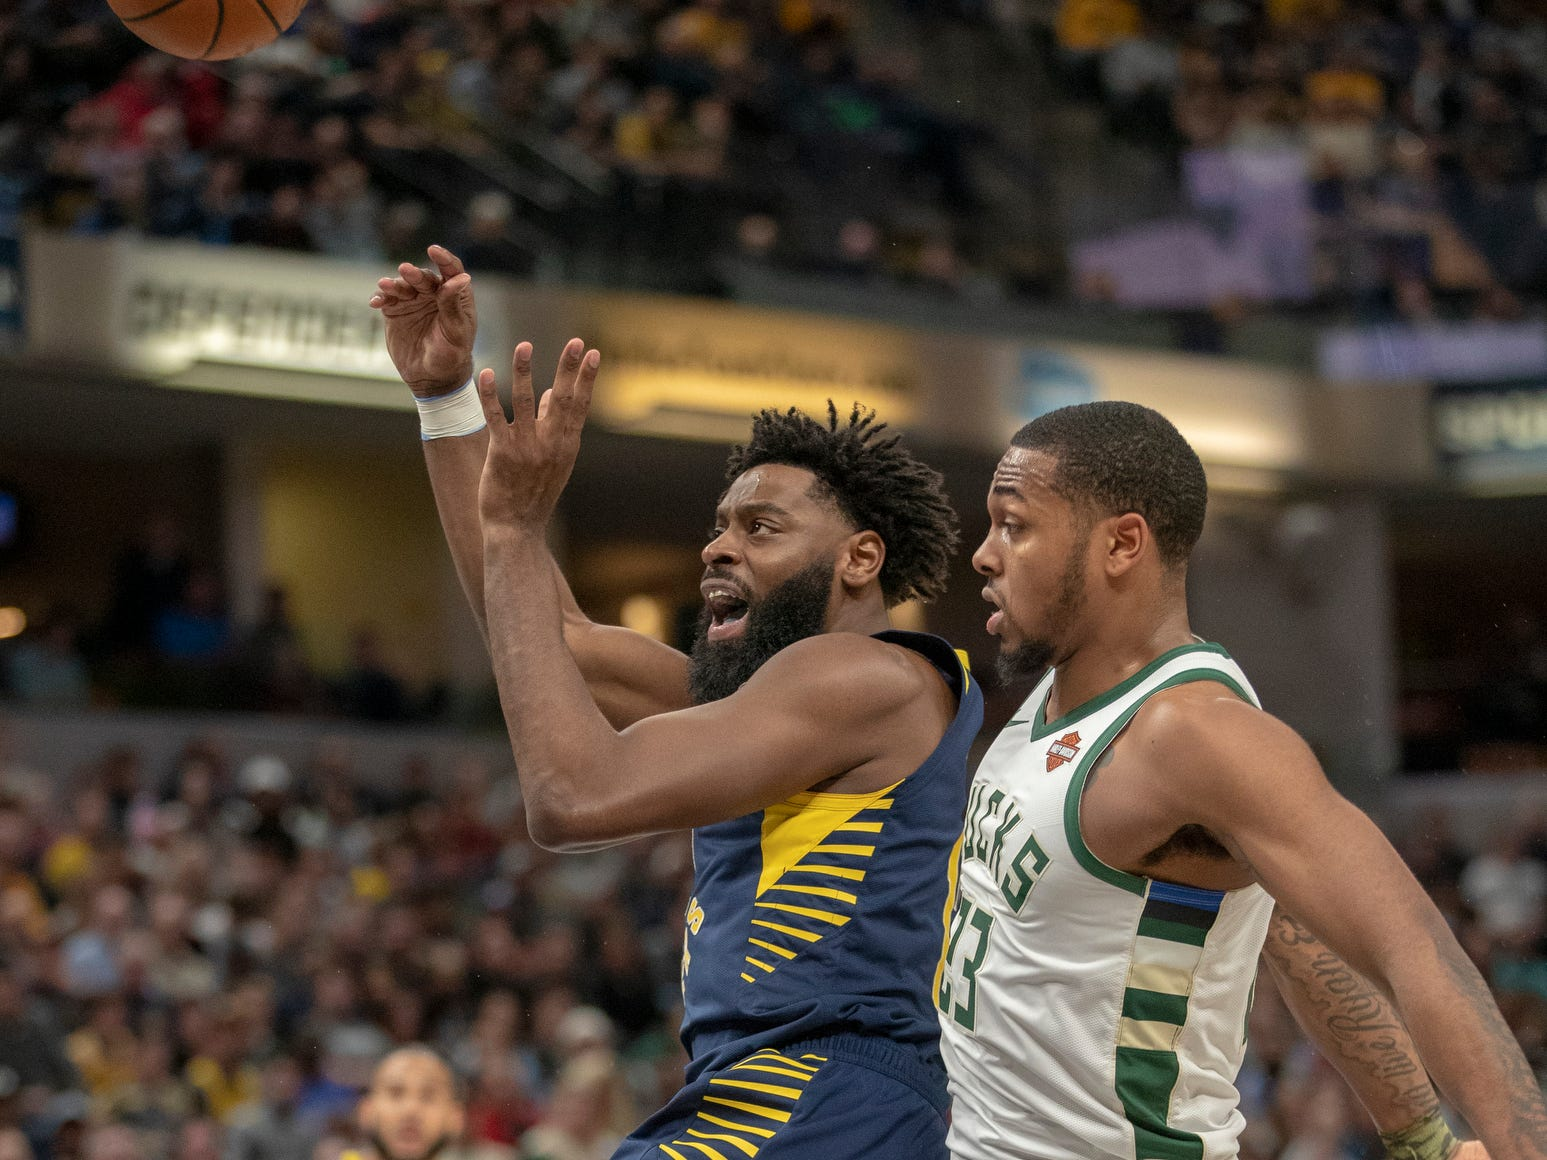 Tyreke Evans of the Indiana Pacers flicks a ball to a teammate during second half action, Bankers Life Fieldhouse, Indianapolis, Wednesday, Feb. 13, 2019. Milwaukee won 106-97.